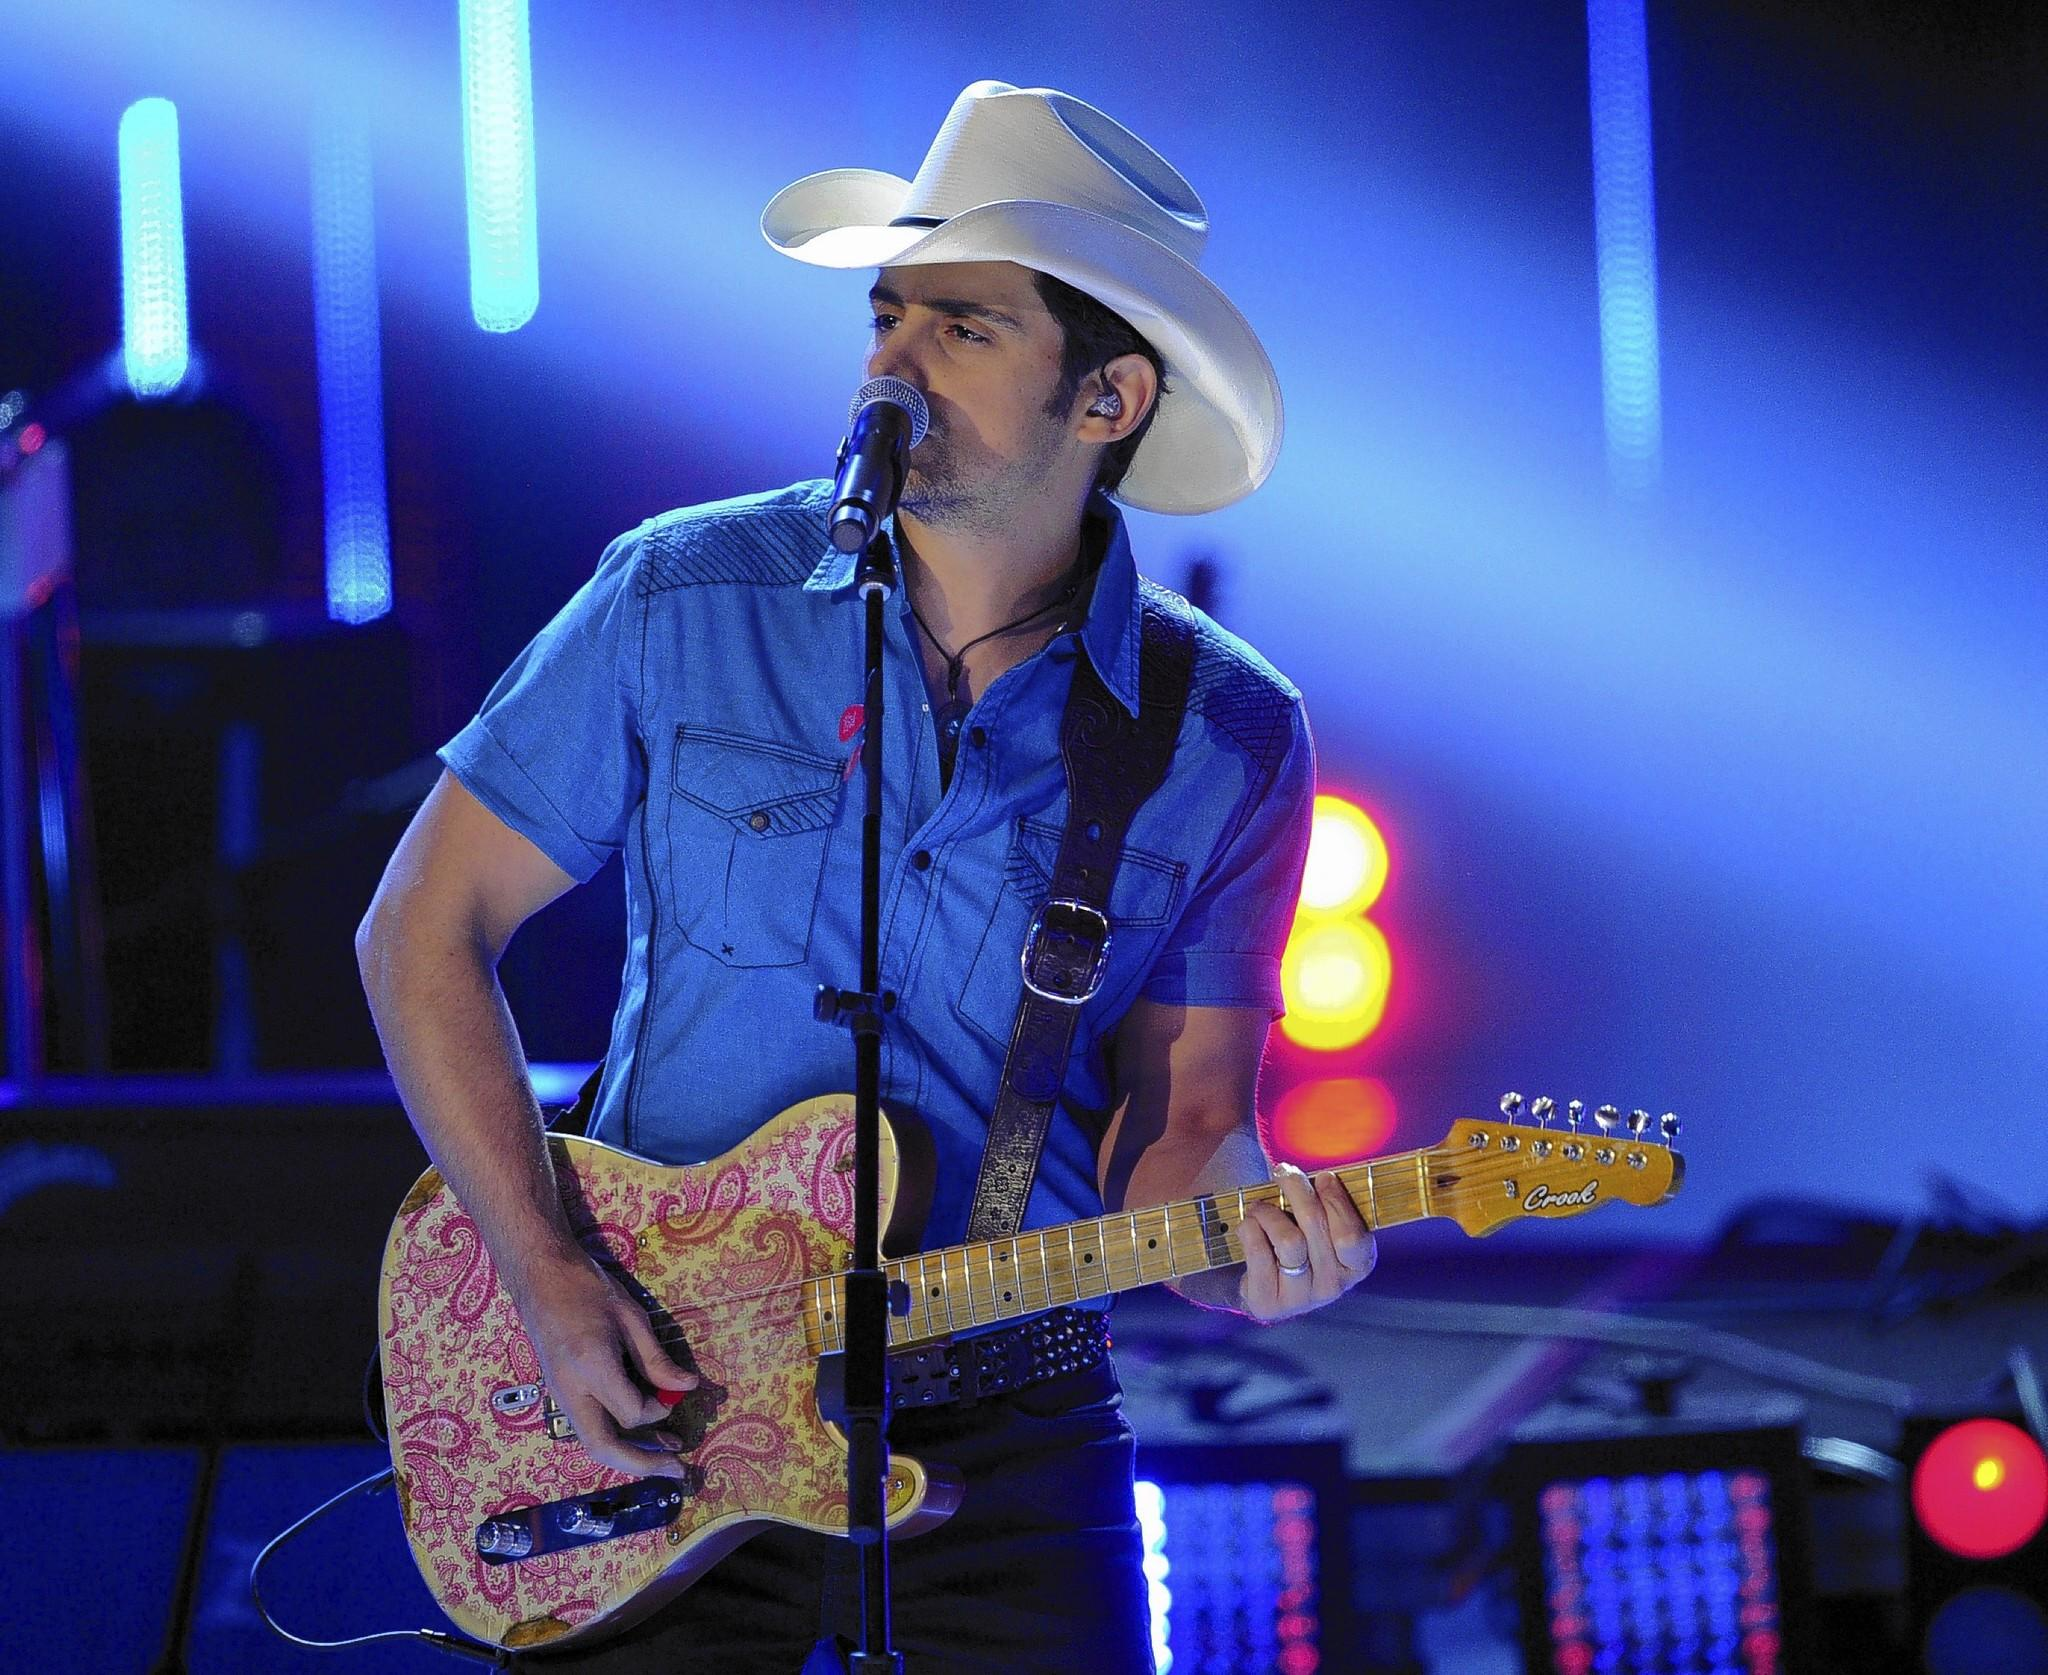 Singer Brad Paisley will perform Jan. 25 at Amway Center in Orlando.